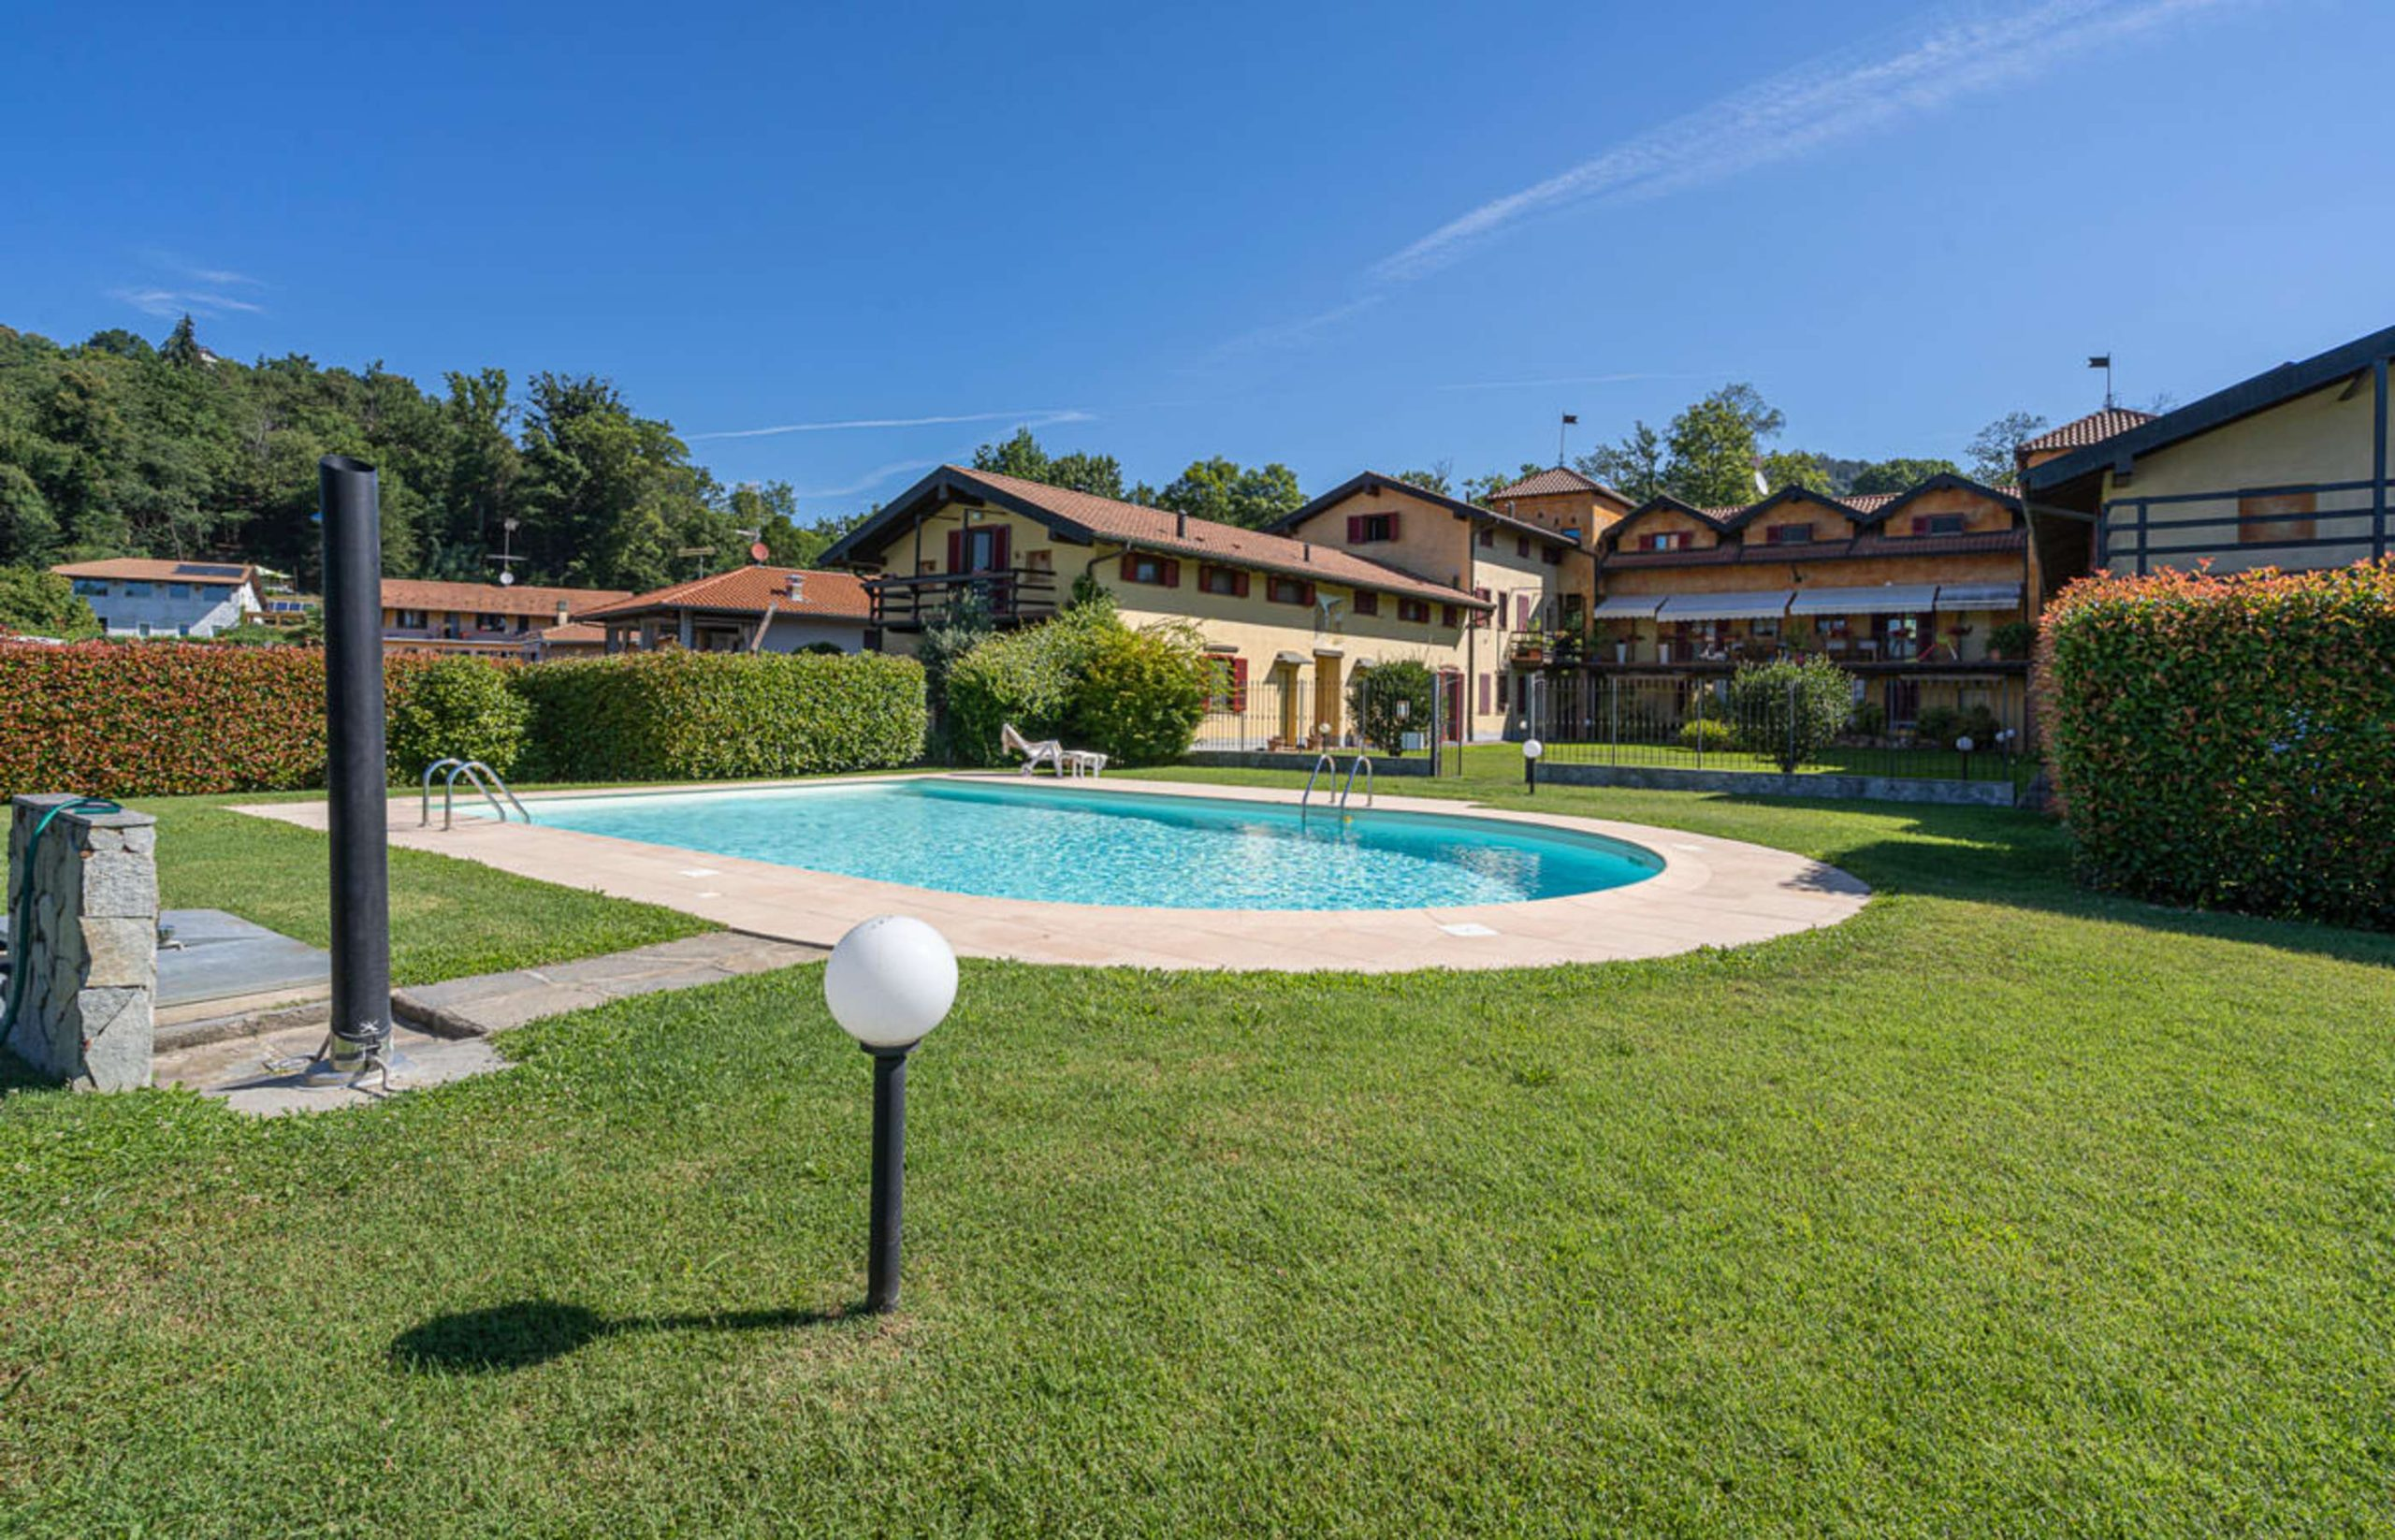 BOLZANO NOVARESE Two bedroom apartment with swimming pool